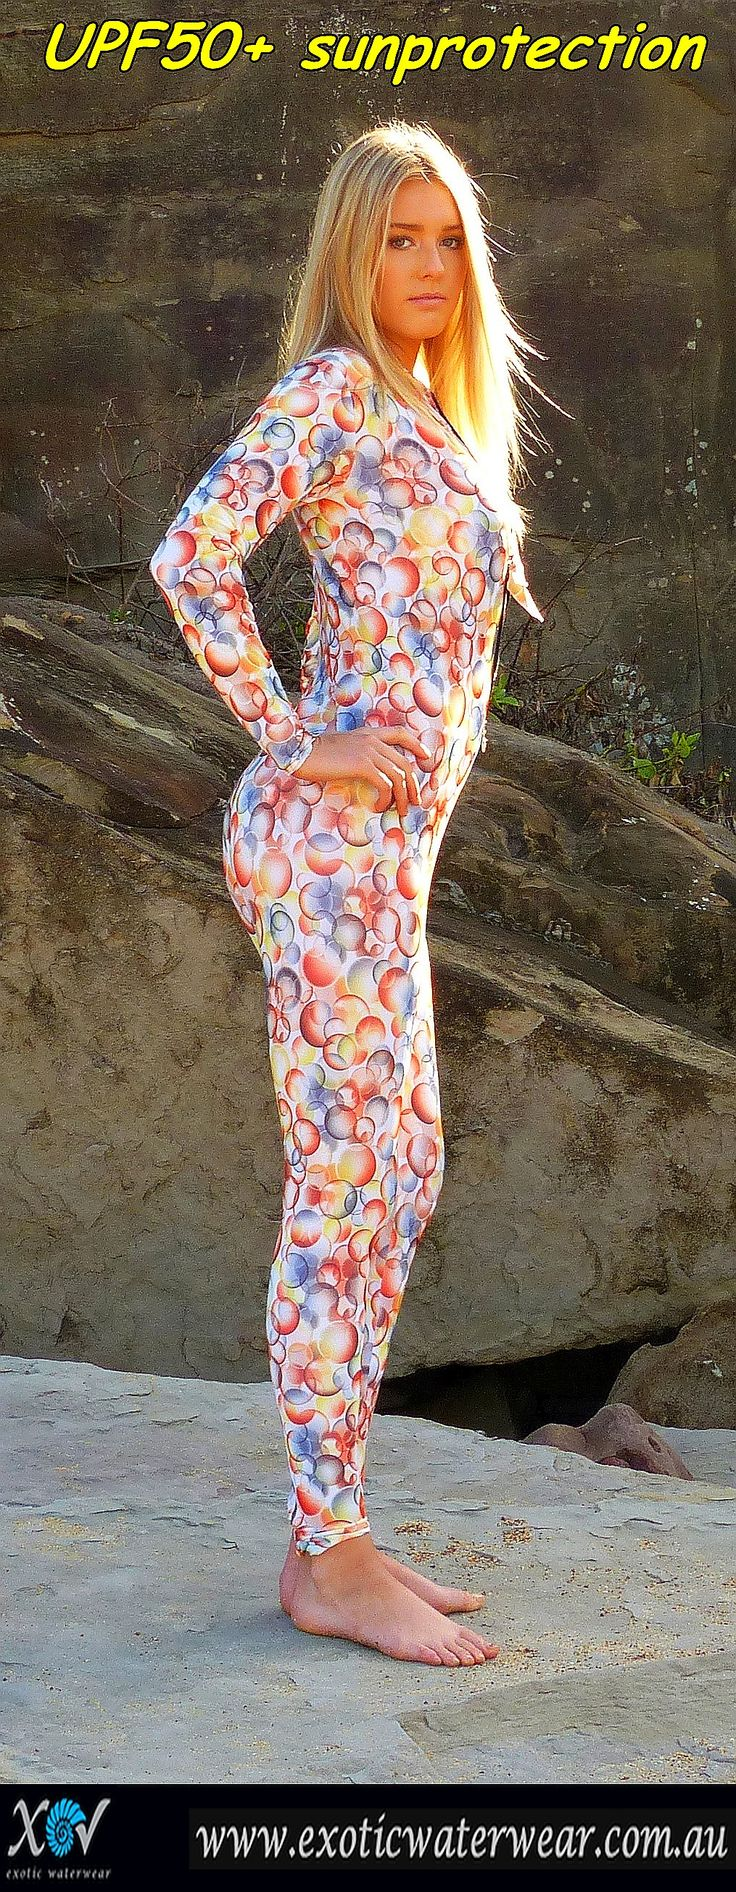 Only $99 AUD for stingersuit with style UPF50+ sunprotection!